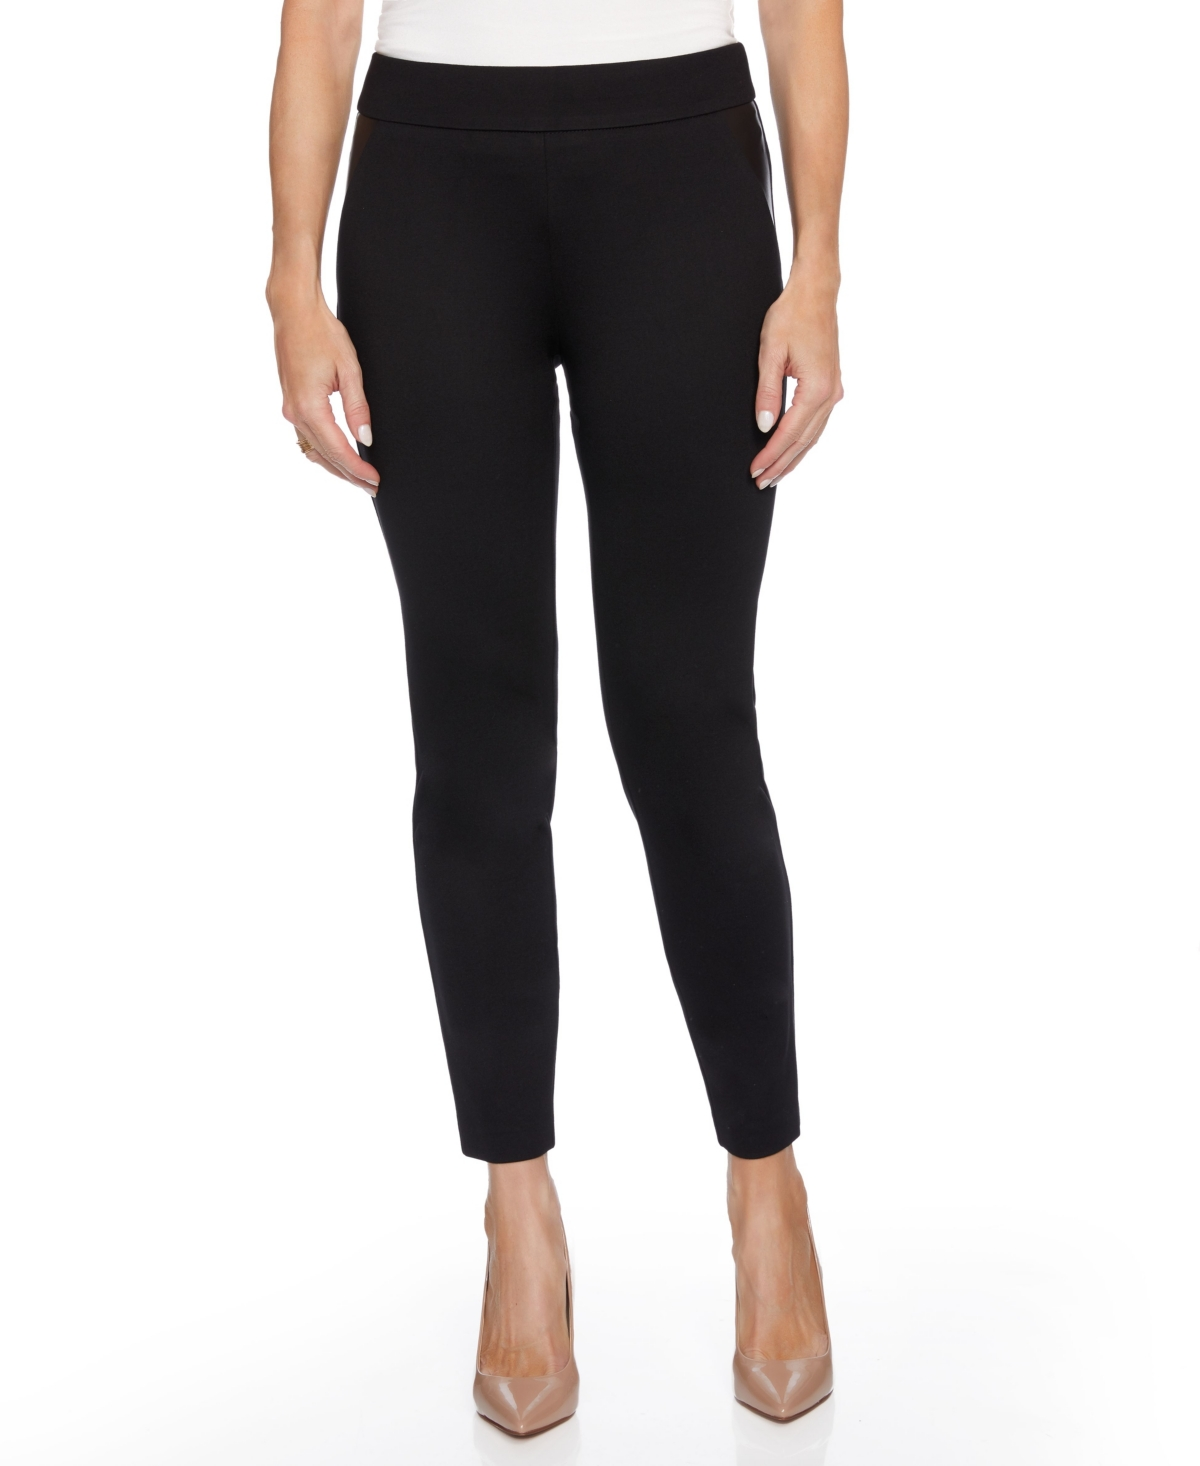 Women's Mixed Media Skinny Leg with Faux Leather Inset Pants